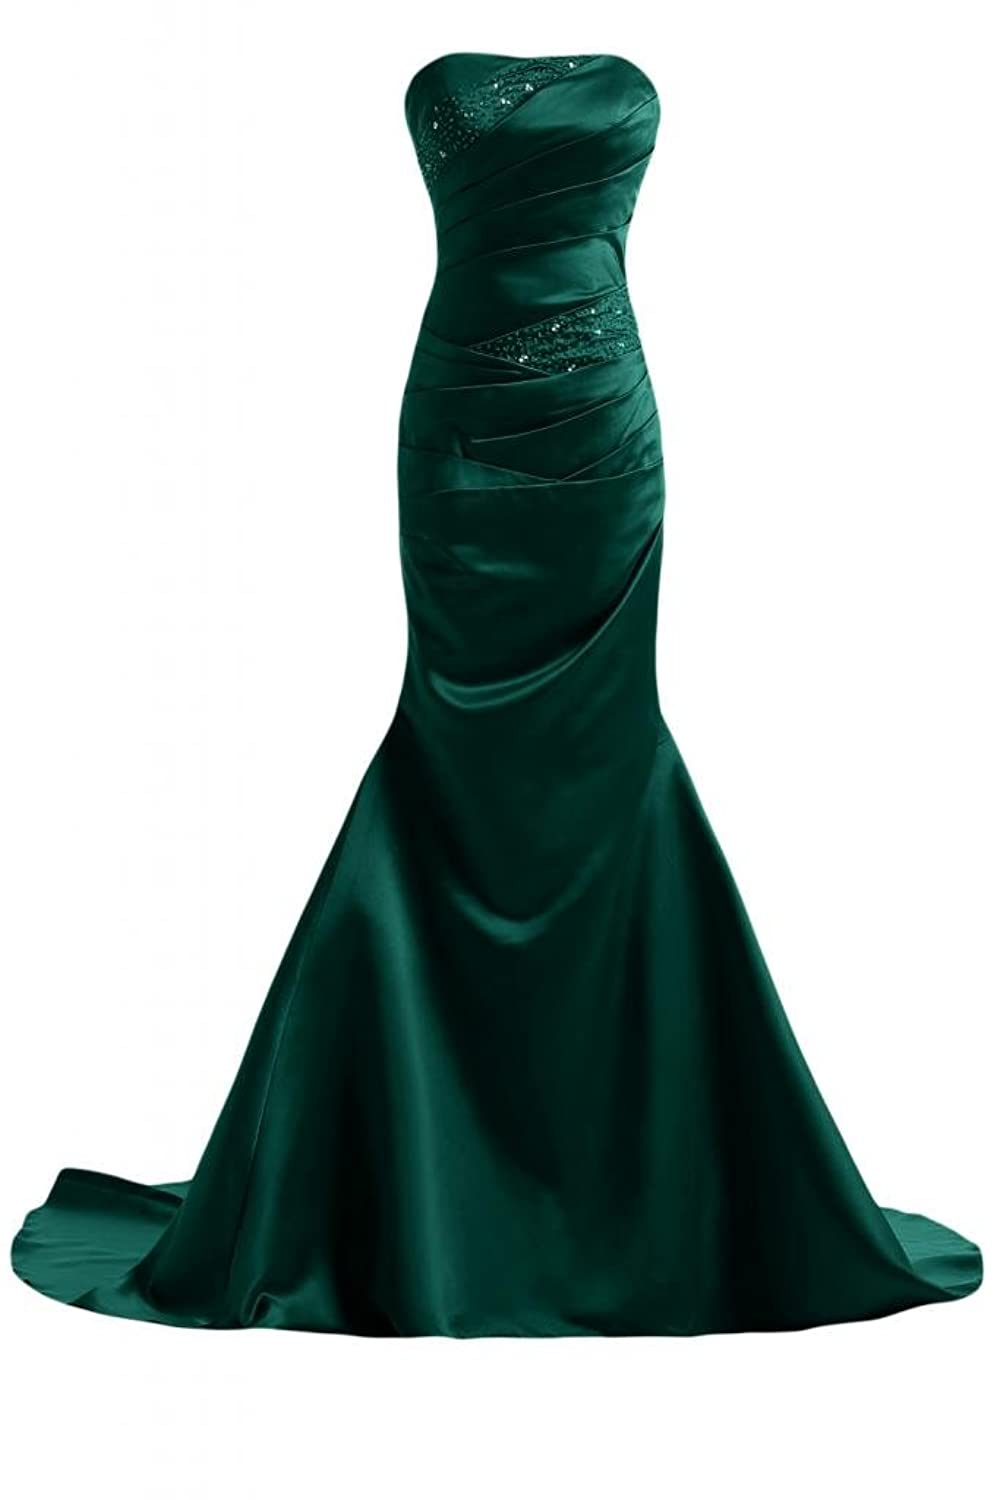 Sunvary Attractive Long Mermaid Evening Dress Formal Dress Pageant Dress Maxi